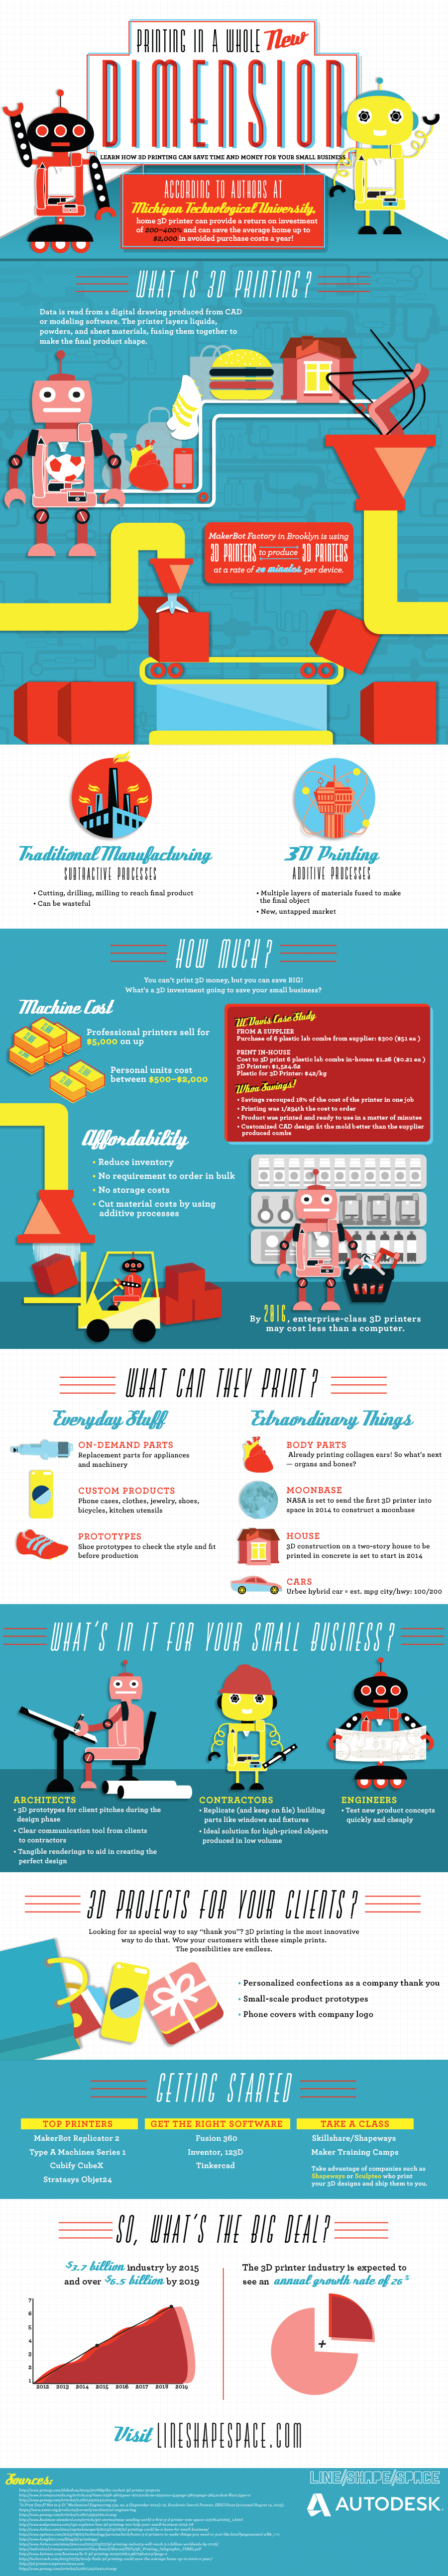 3D Printing Facts: Printing In A Whole New Dimension